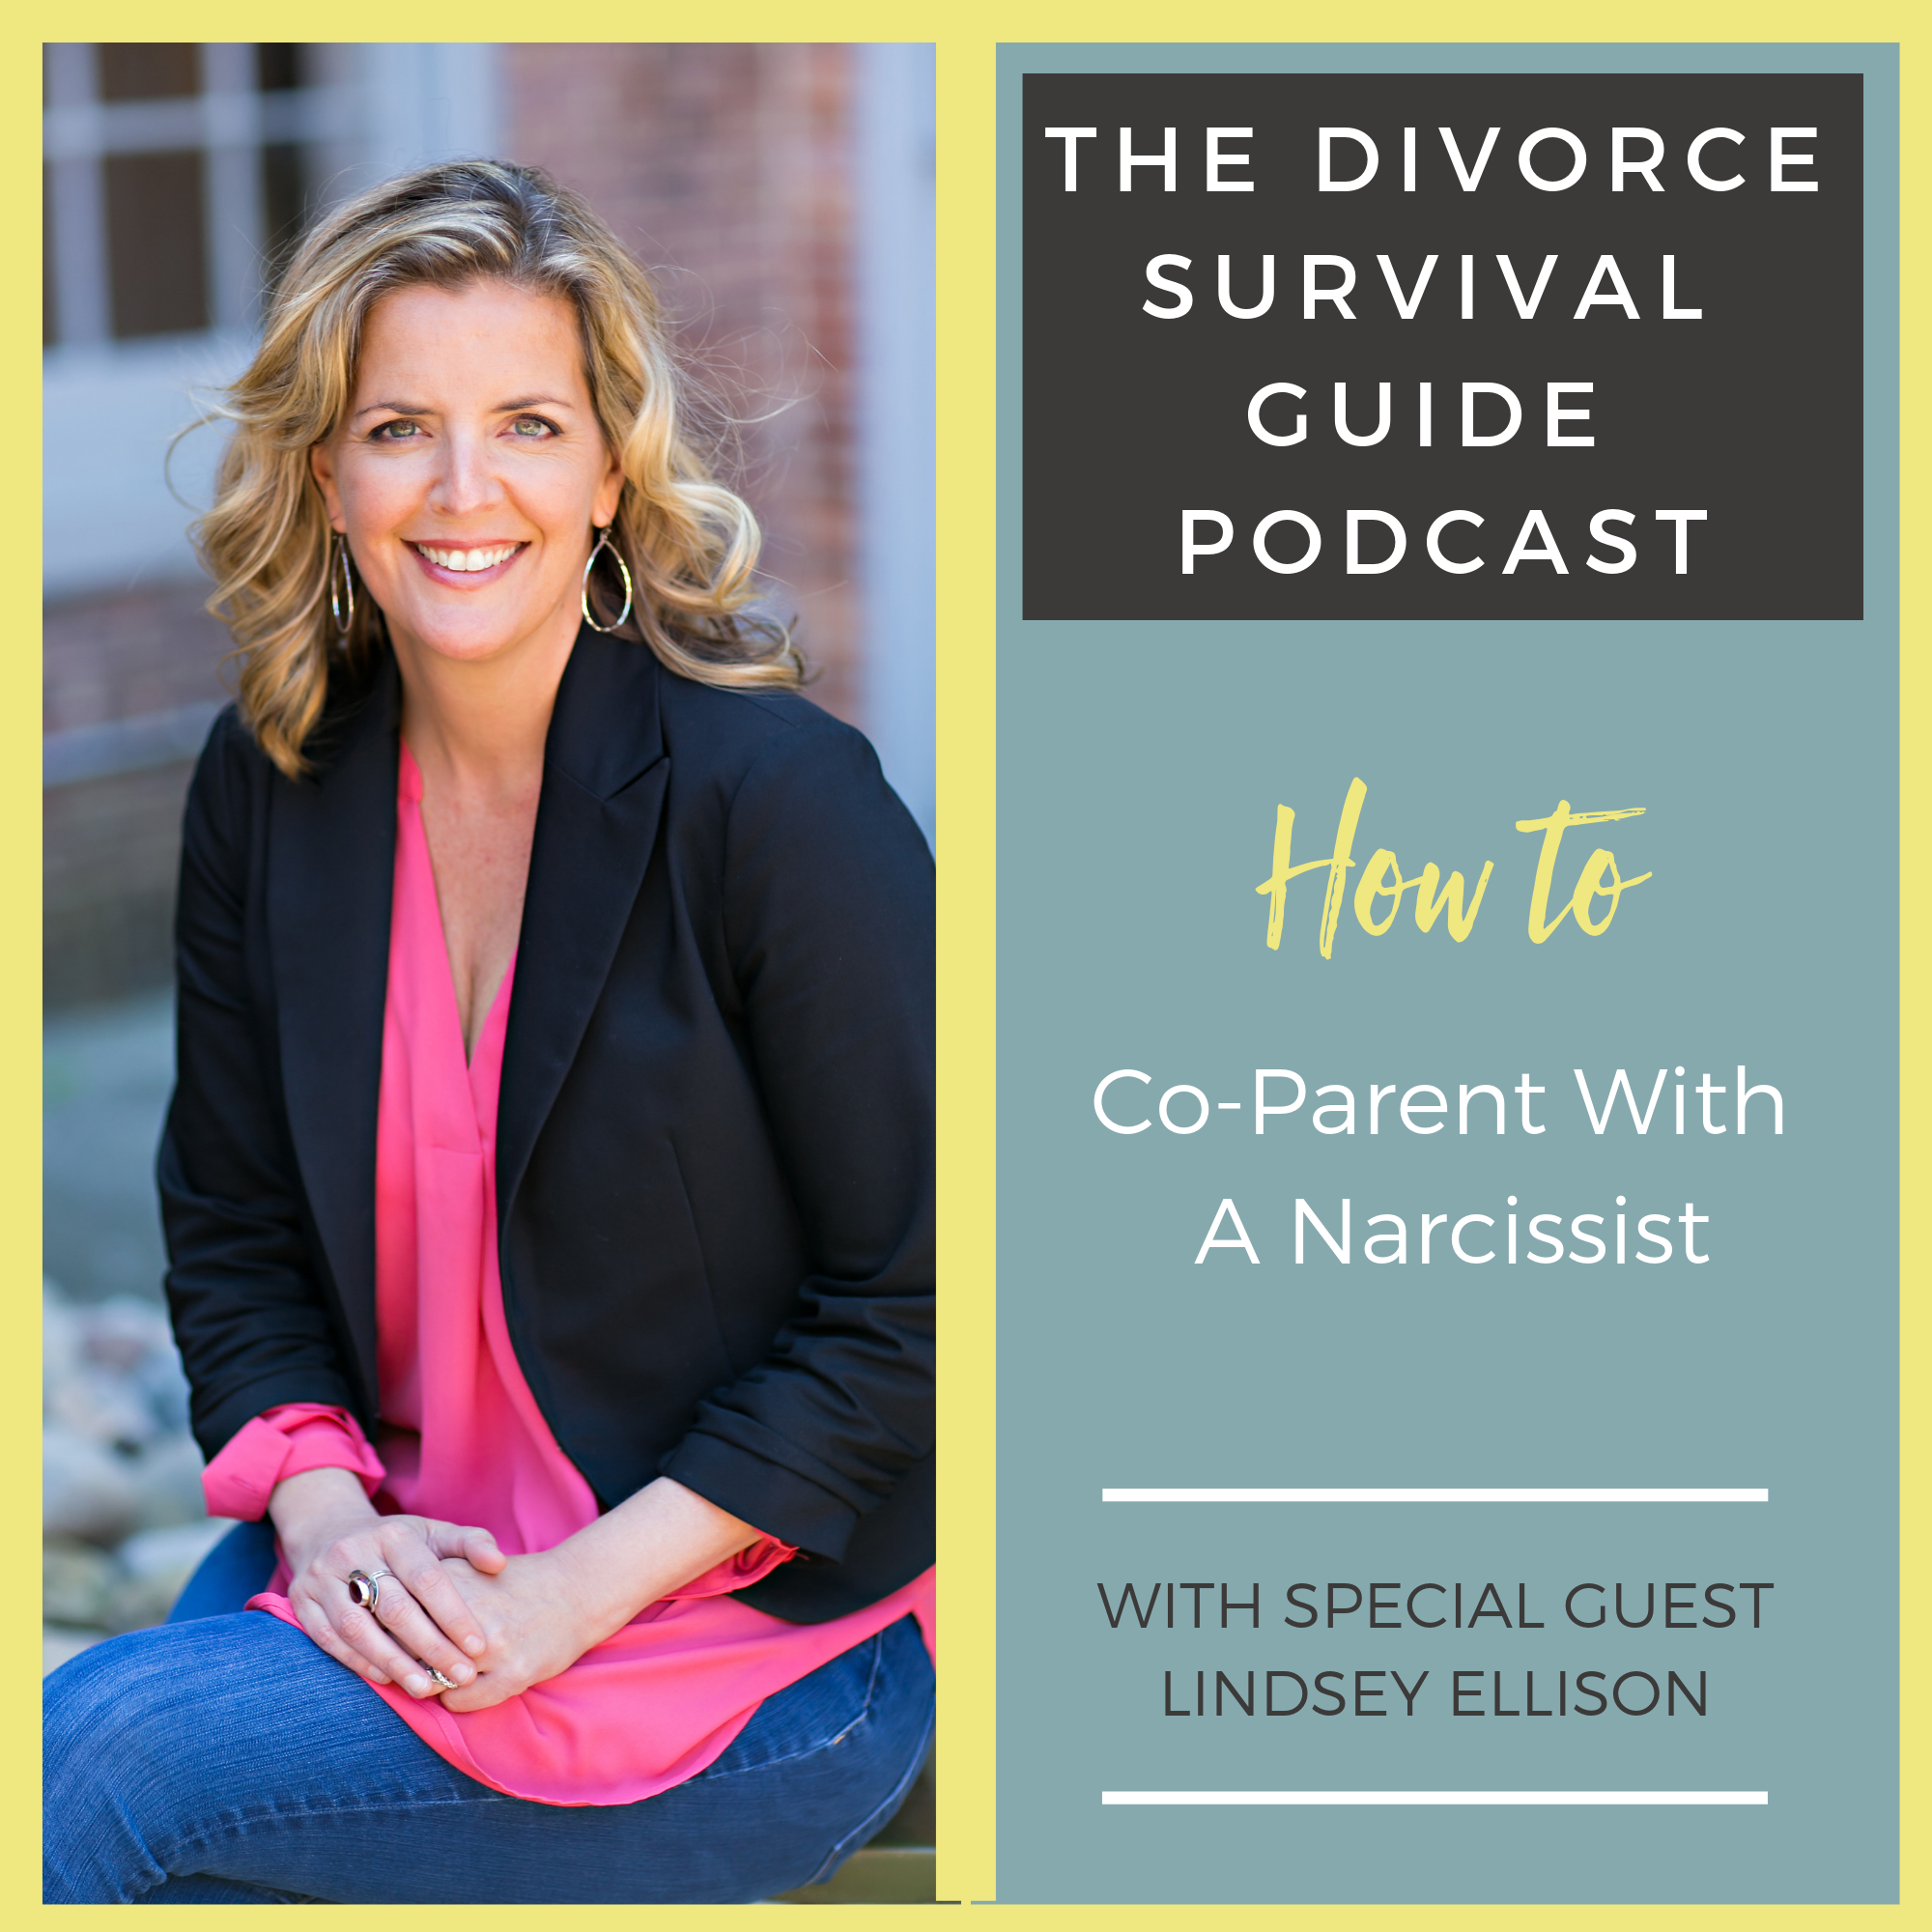 The Divorce Survival Guide Podcast - How To Co-Parent with a Narcissist with Lindsey Ellison